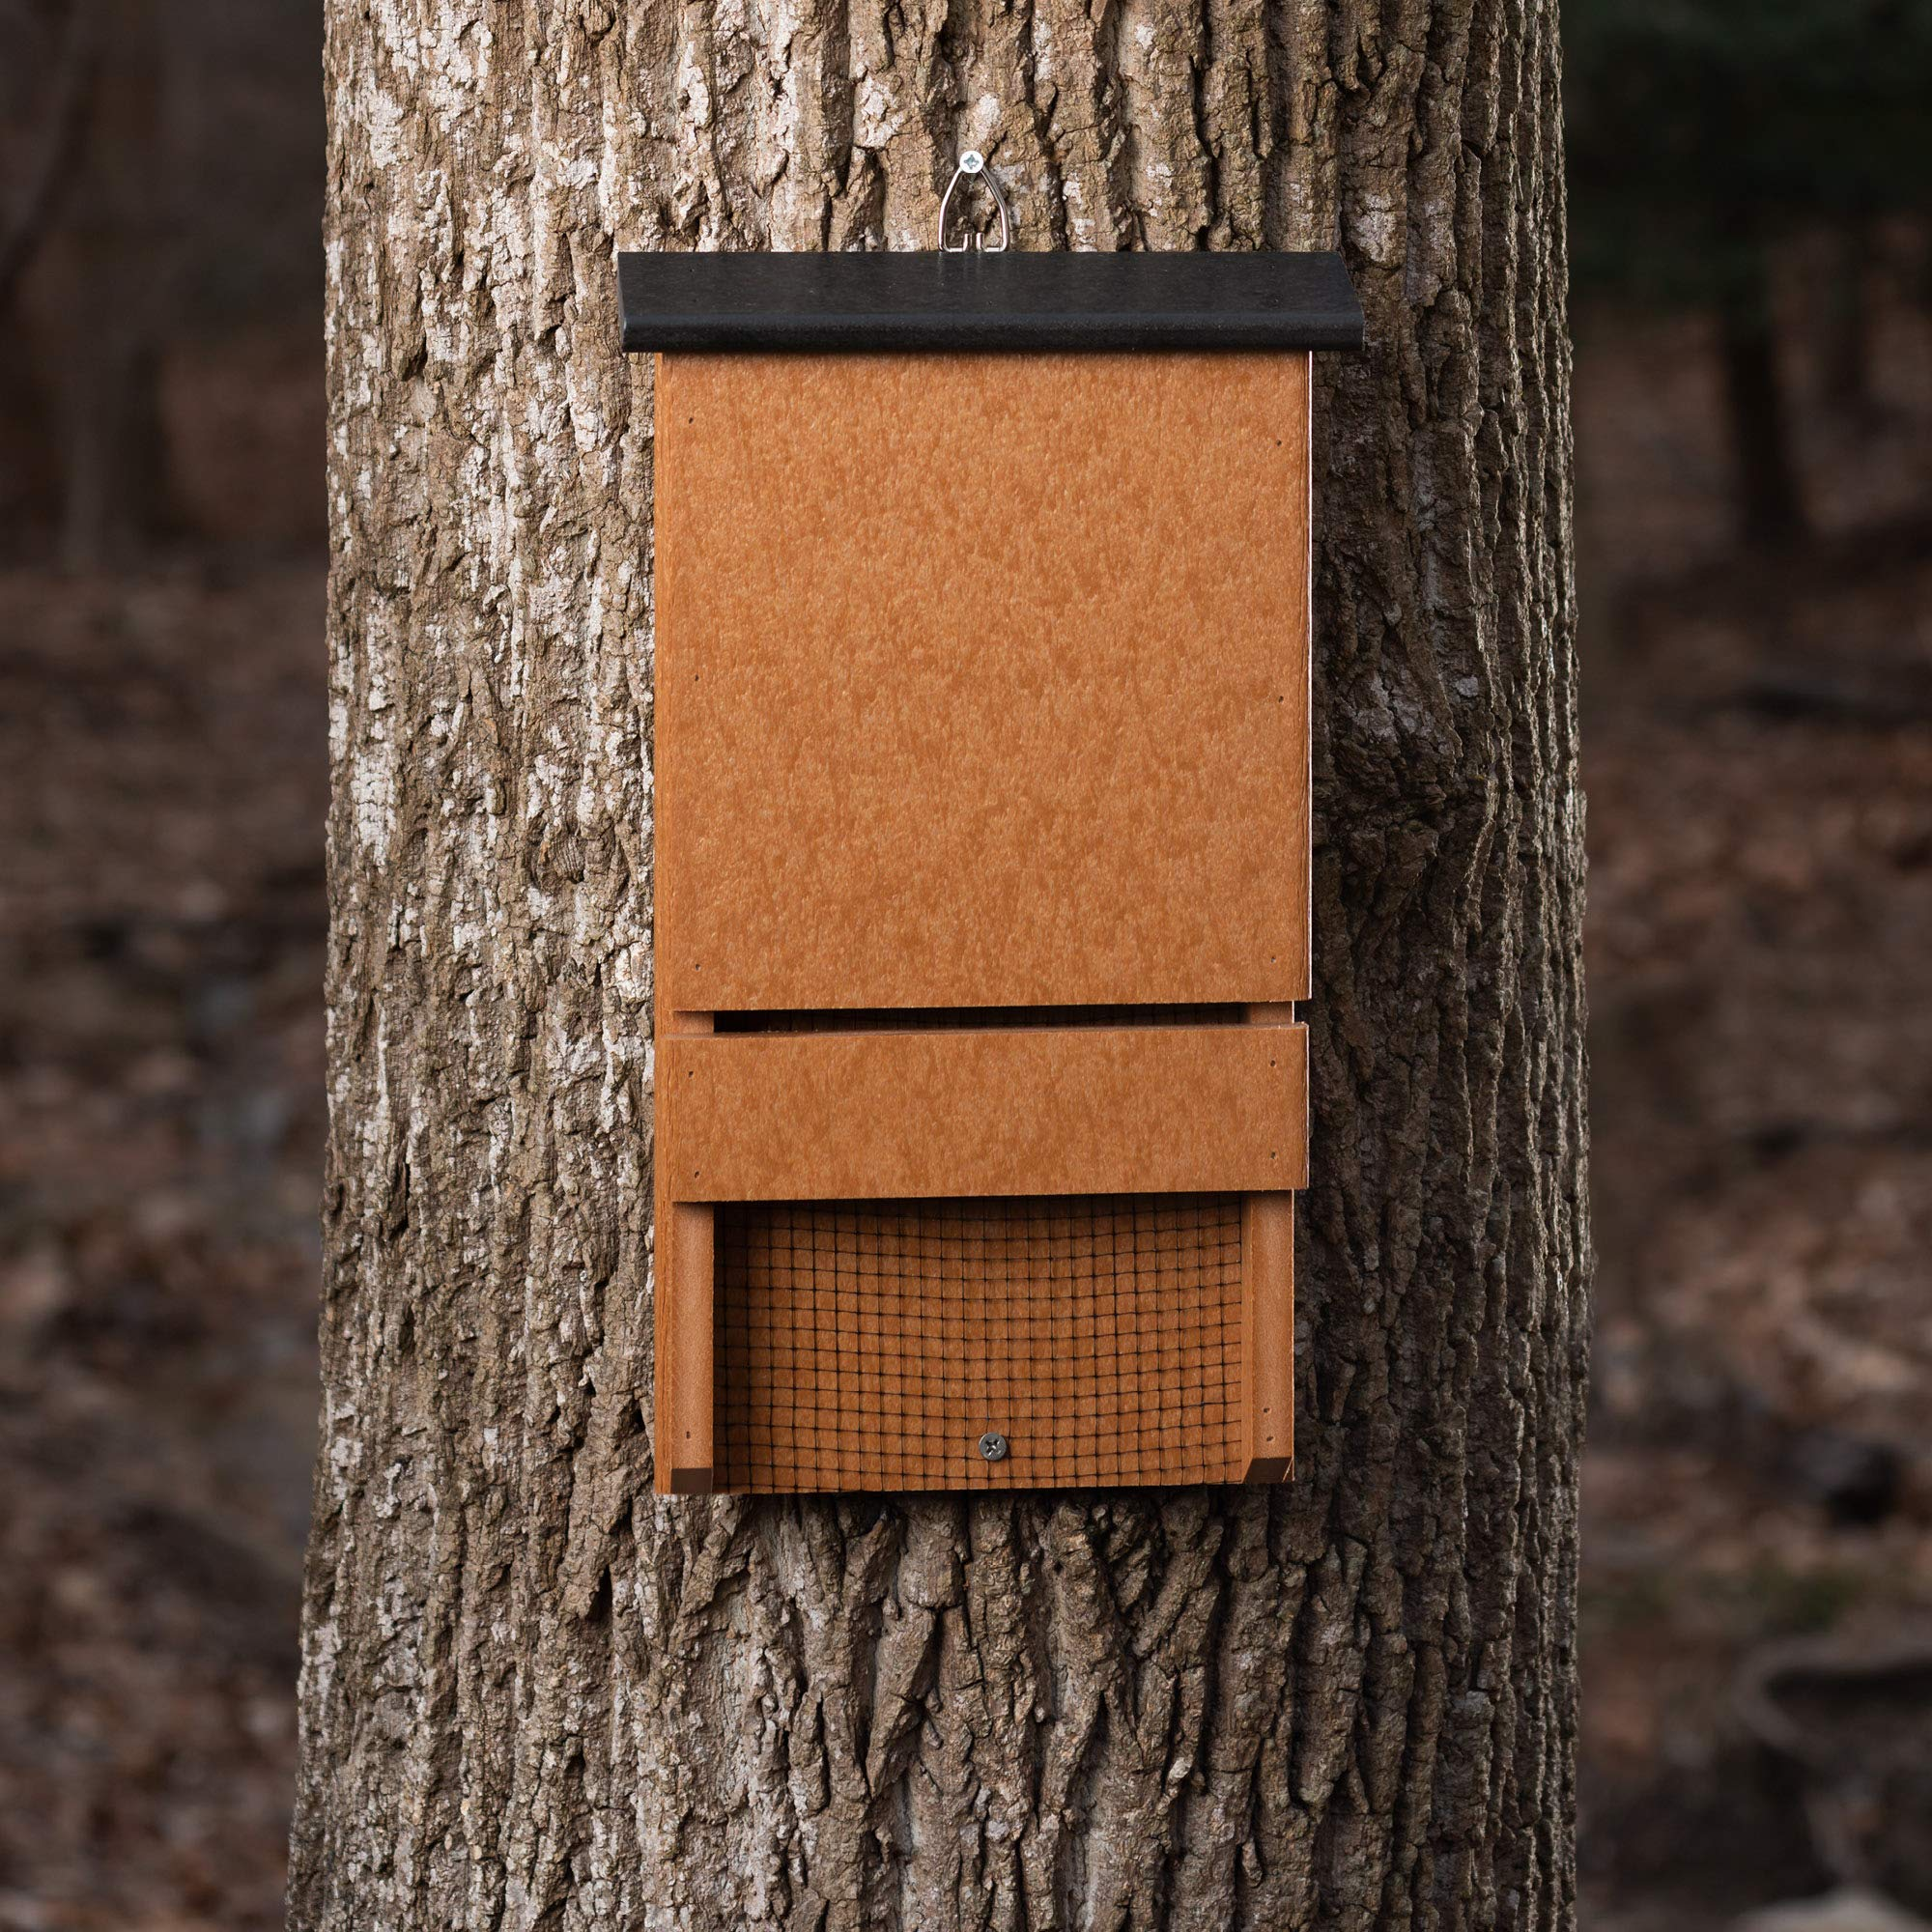 Handmade Weather Resistant Outdoor Poly Wood Bat House Bundled with Night Blooming Flower Seeds Offering Alluring Scents to Attract Insects by Amish Designed (Image #5)